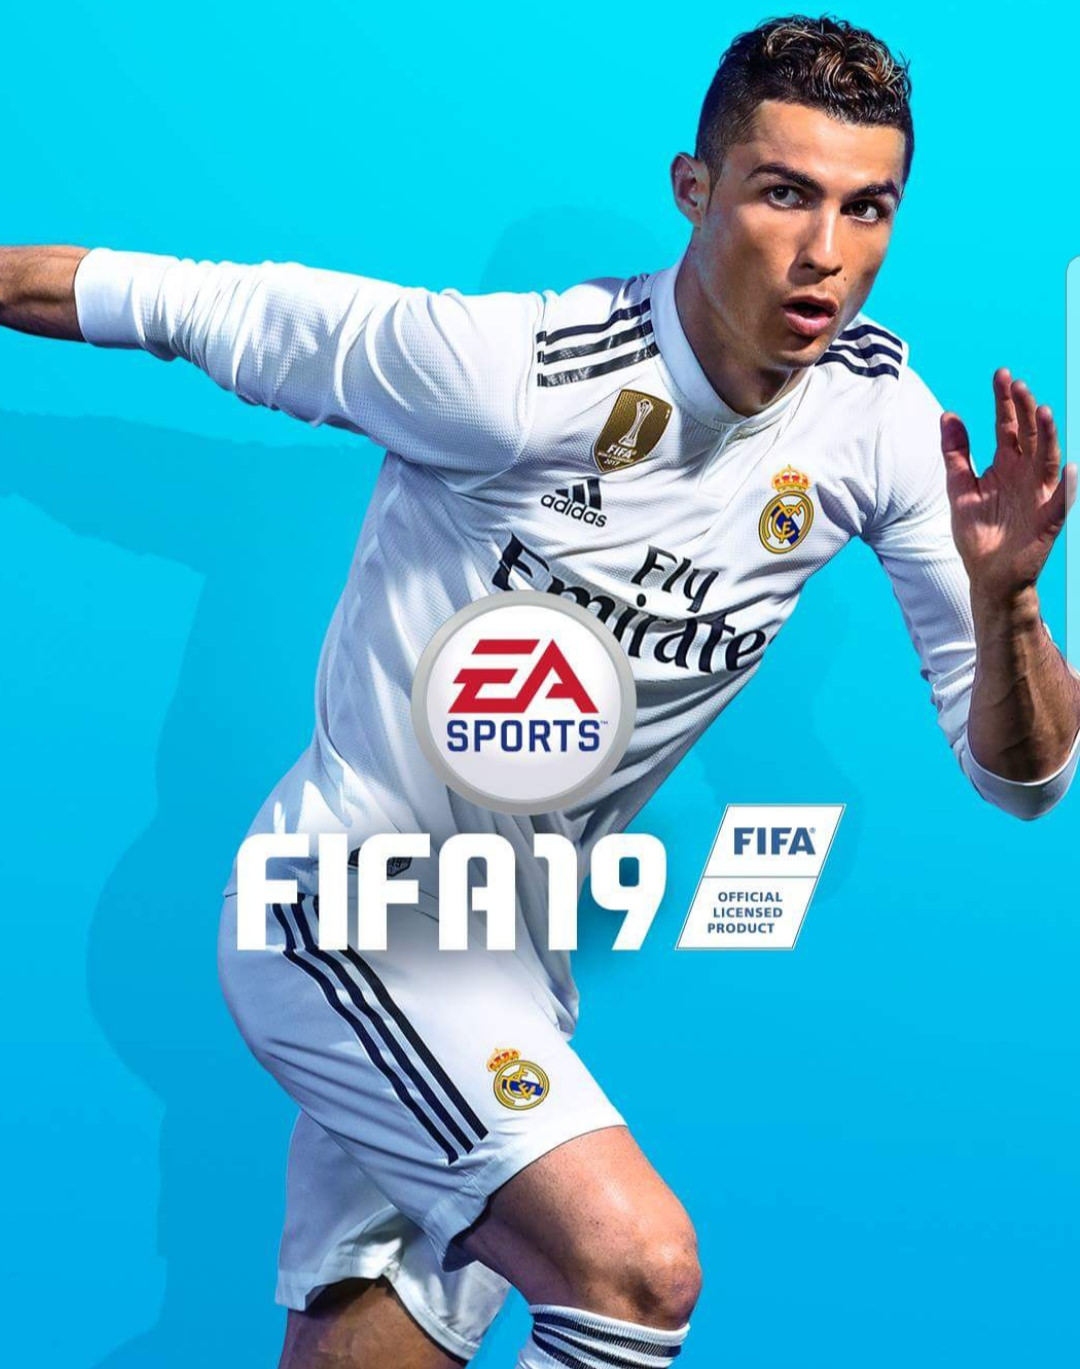 Federation Internationale de Football Association 19 Officially Unveiled; Release Date, Gameplay, Champions League Revealed